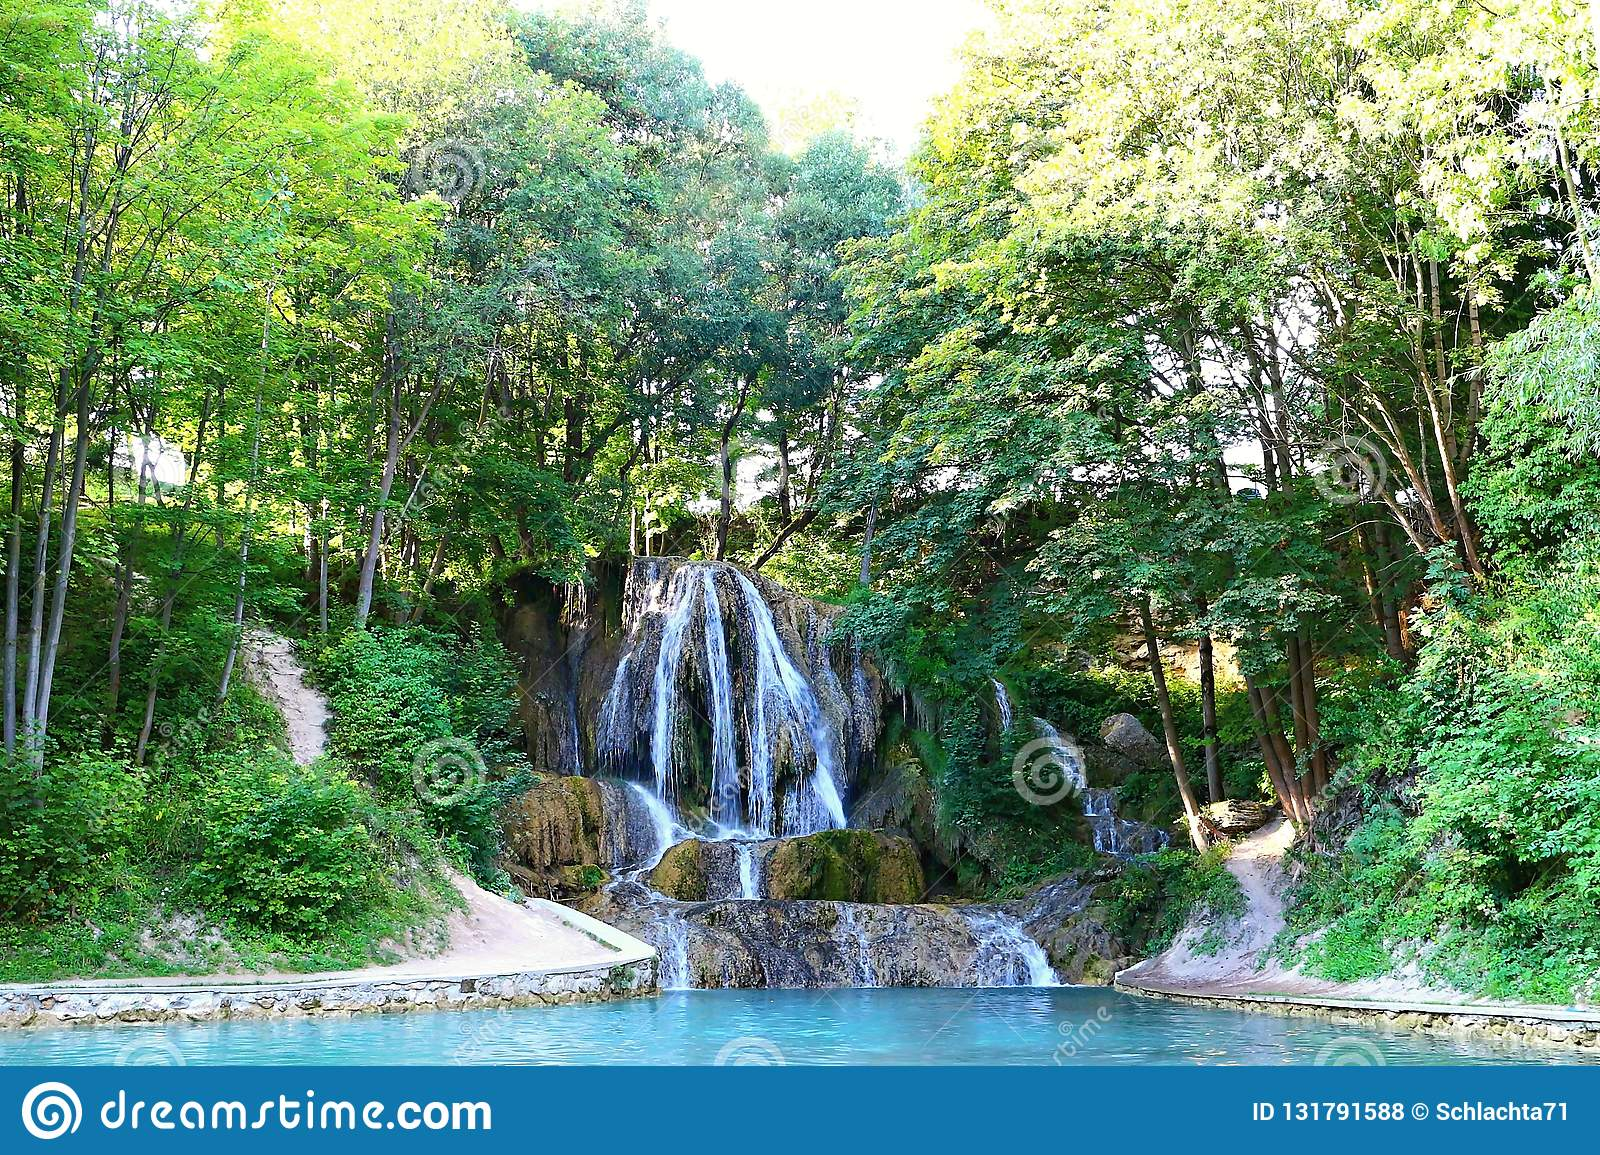 Lucky waterfall, a village with well-known SPA, travertine fields and indispensable.